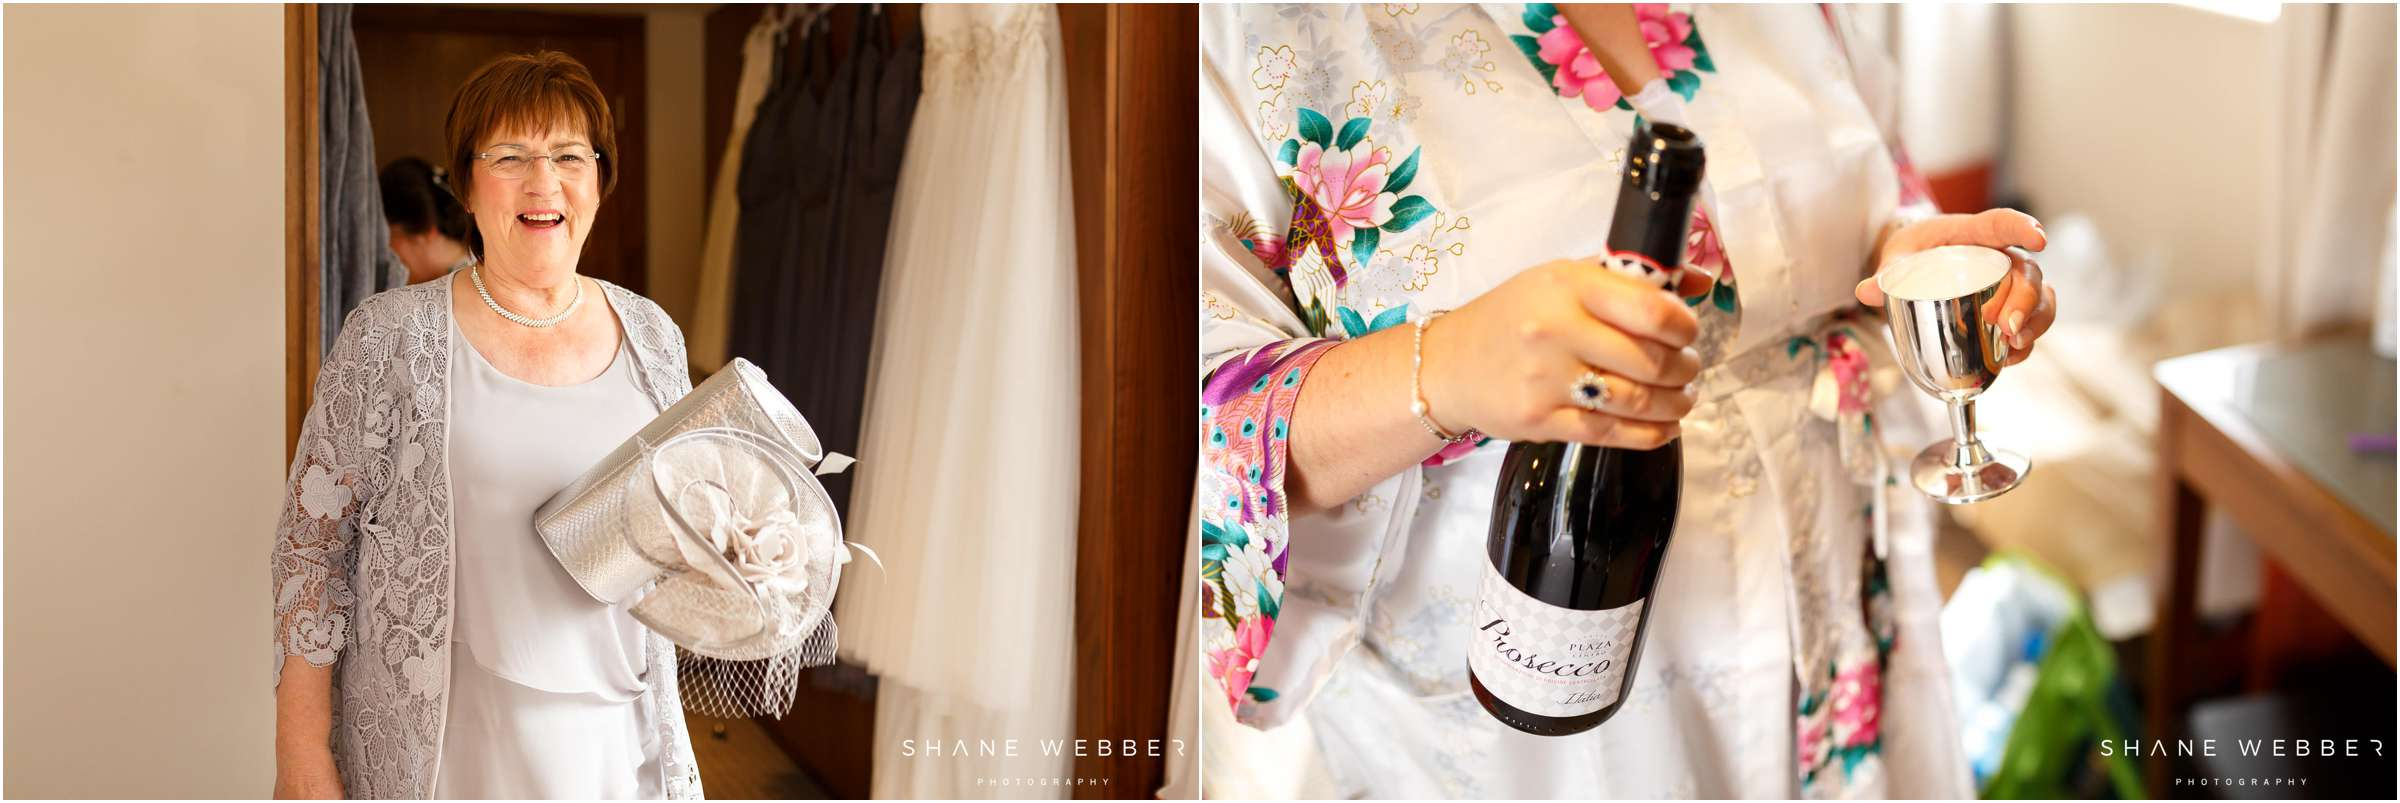 bridal morning prosecco